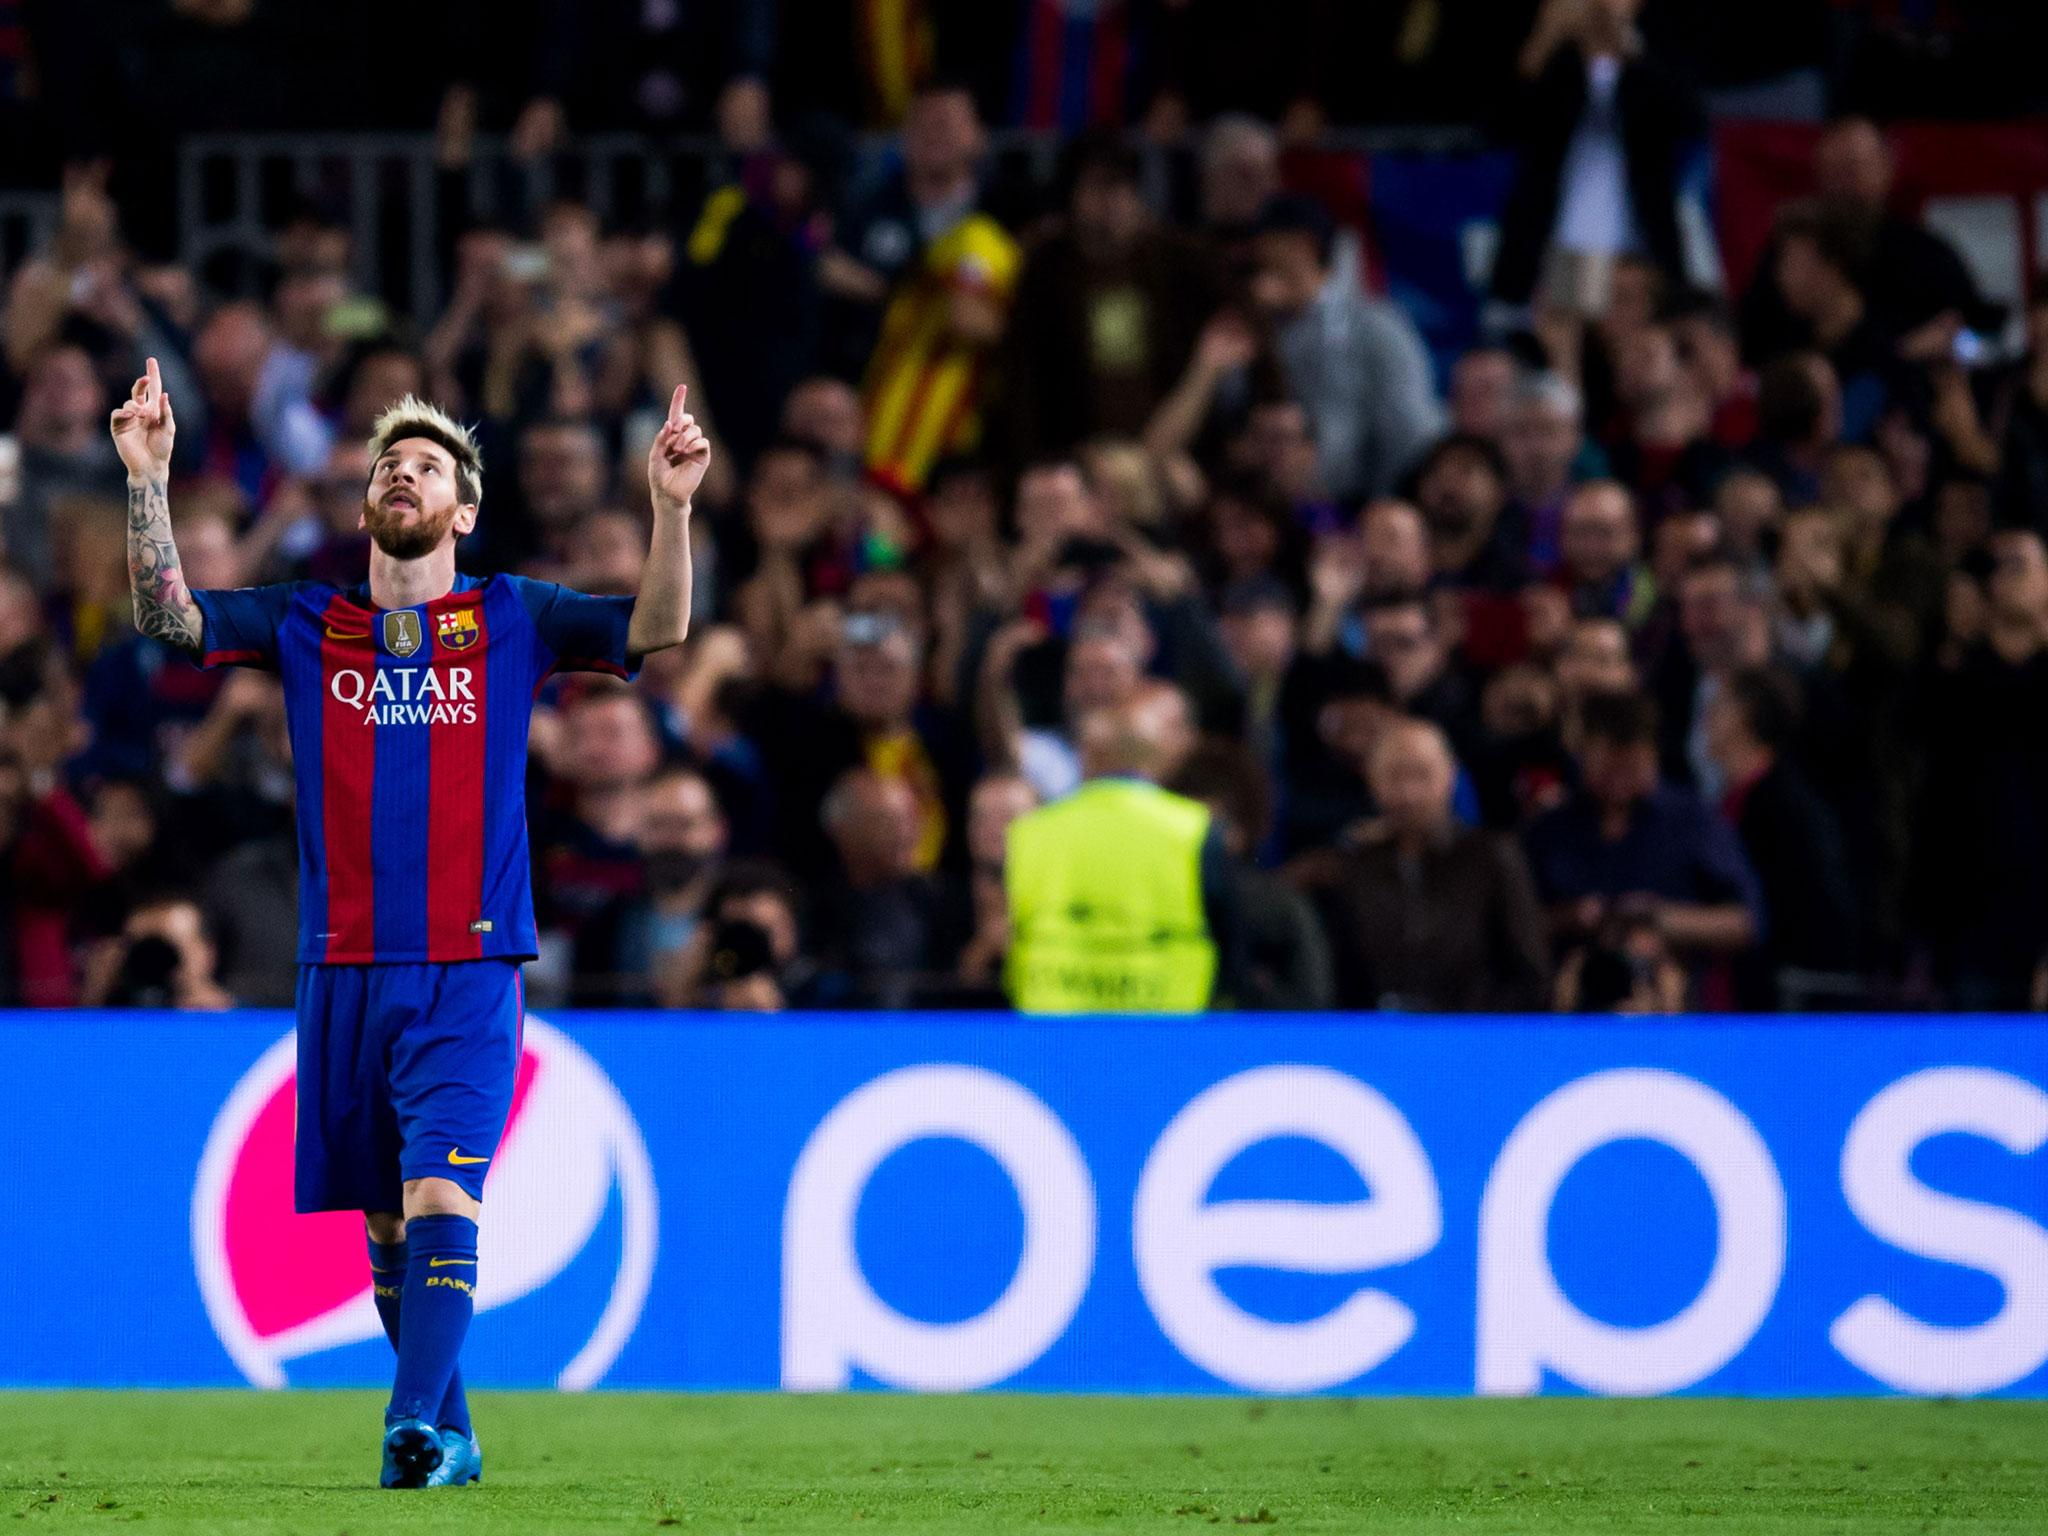 Barcelona vs Manchester City match report: Error-prone City